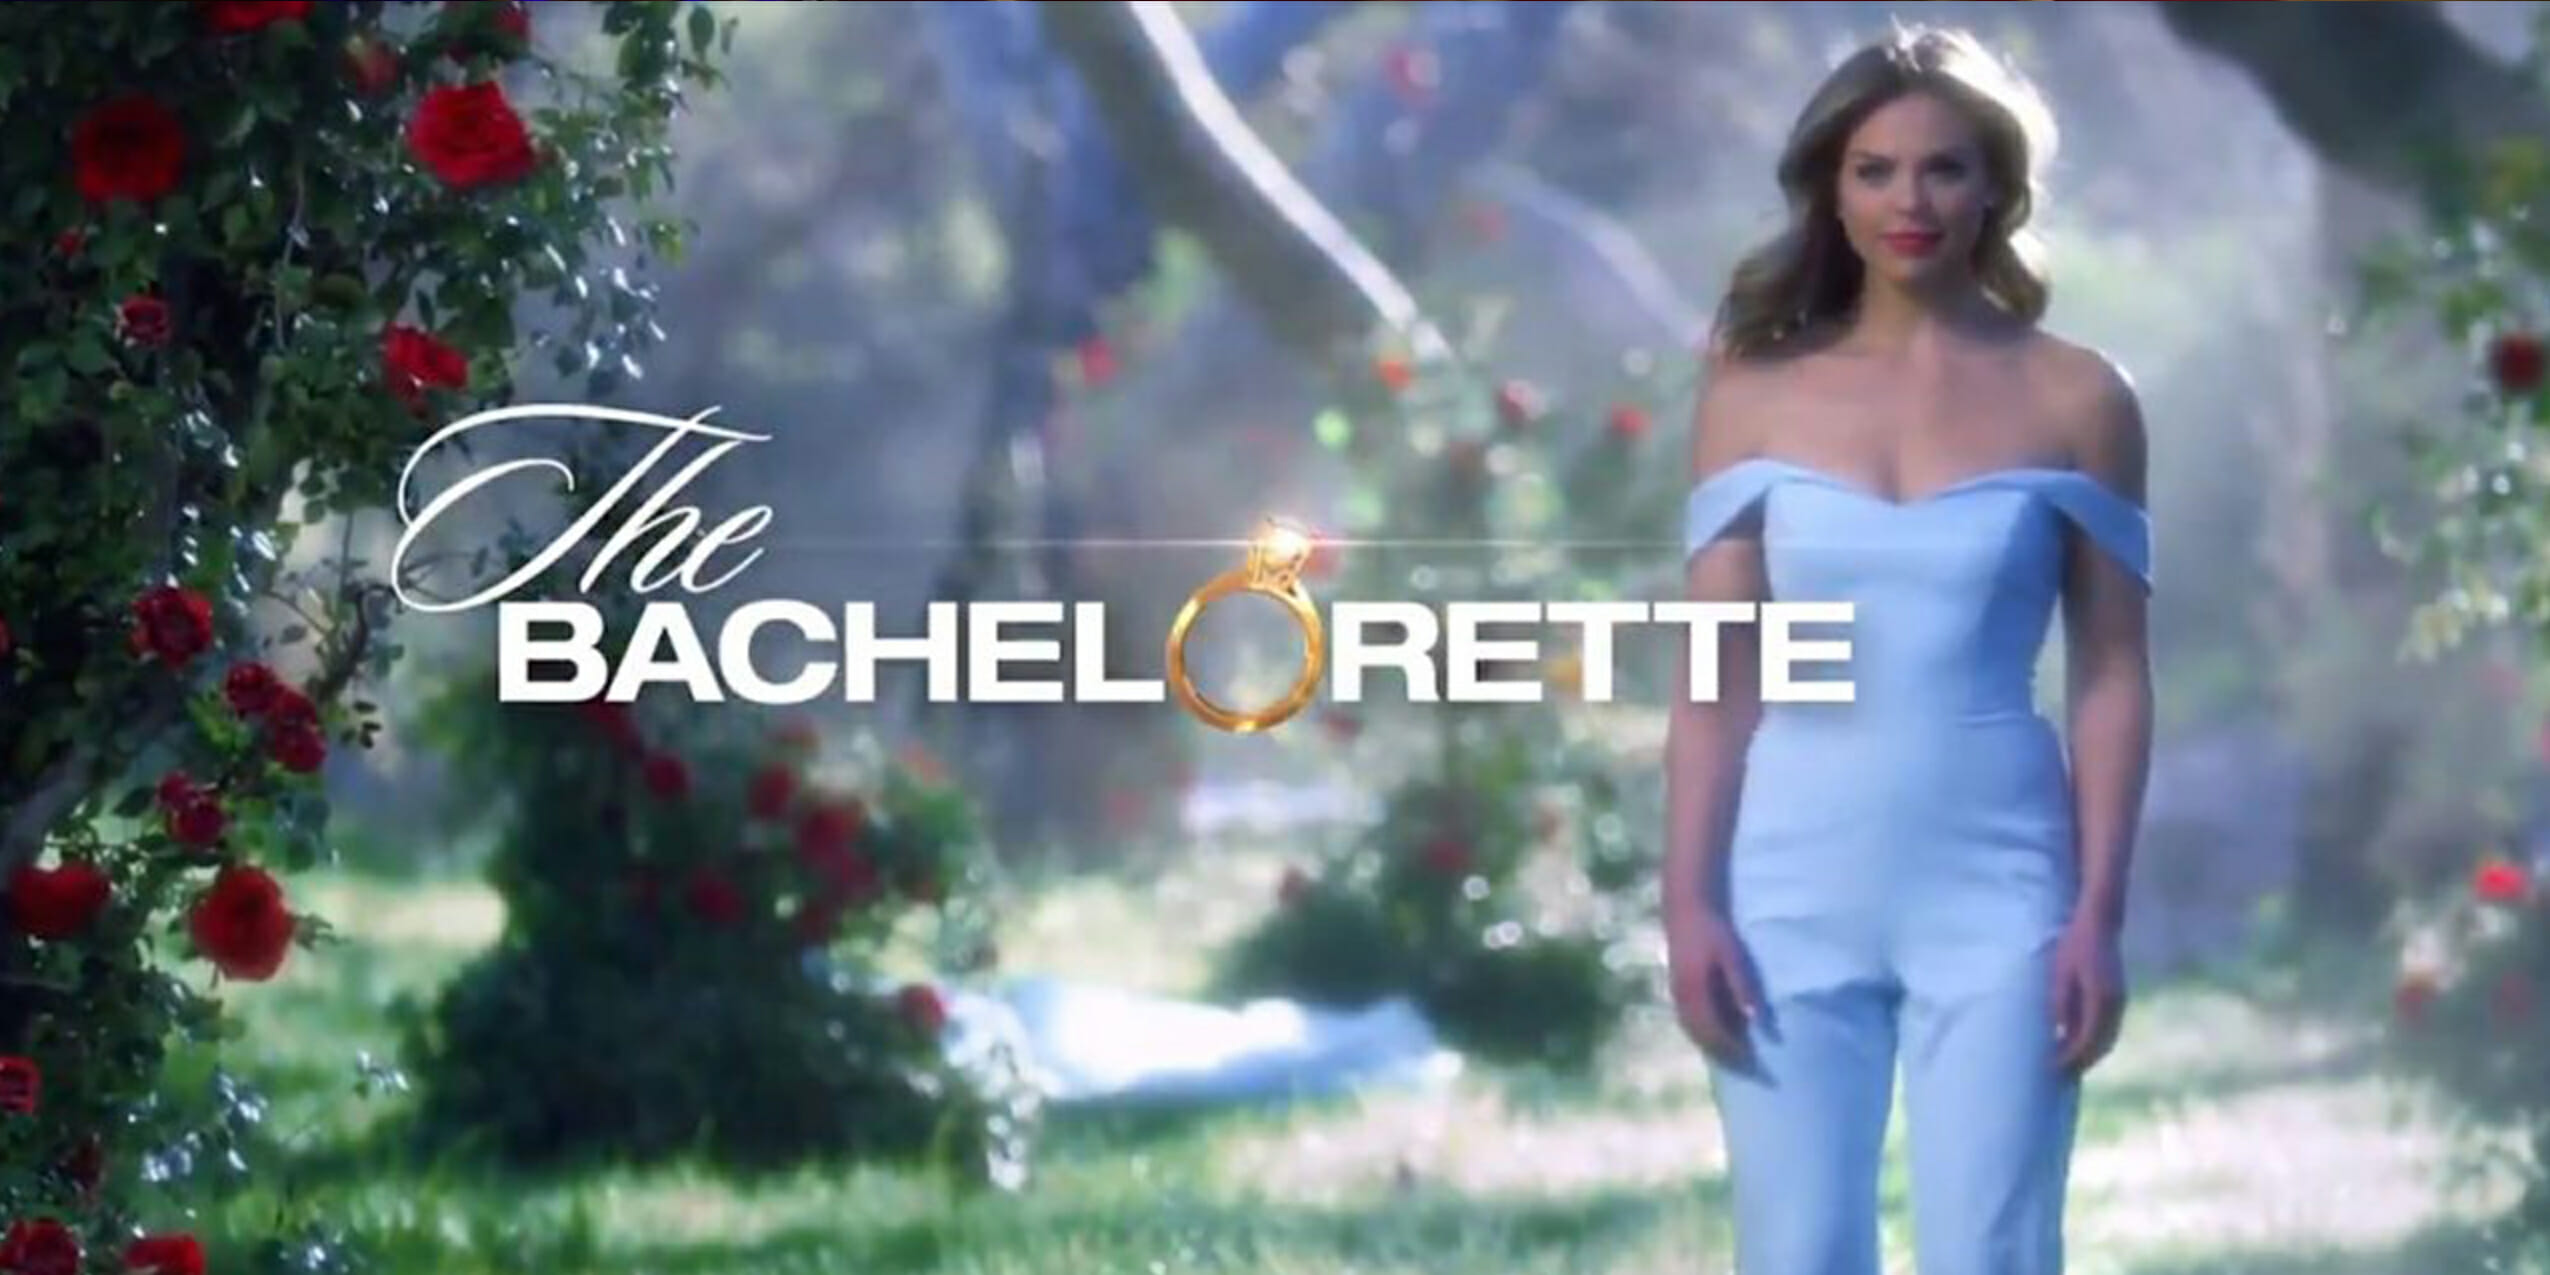 The Bachelorette Spoilers